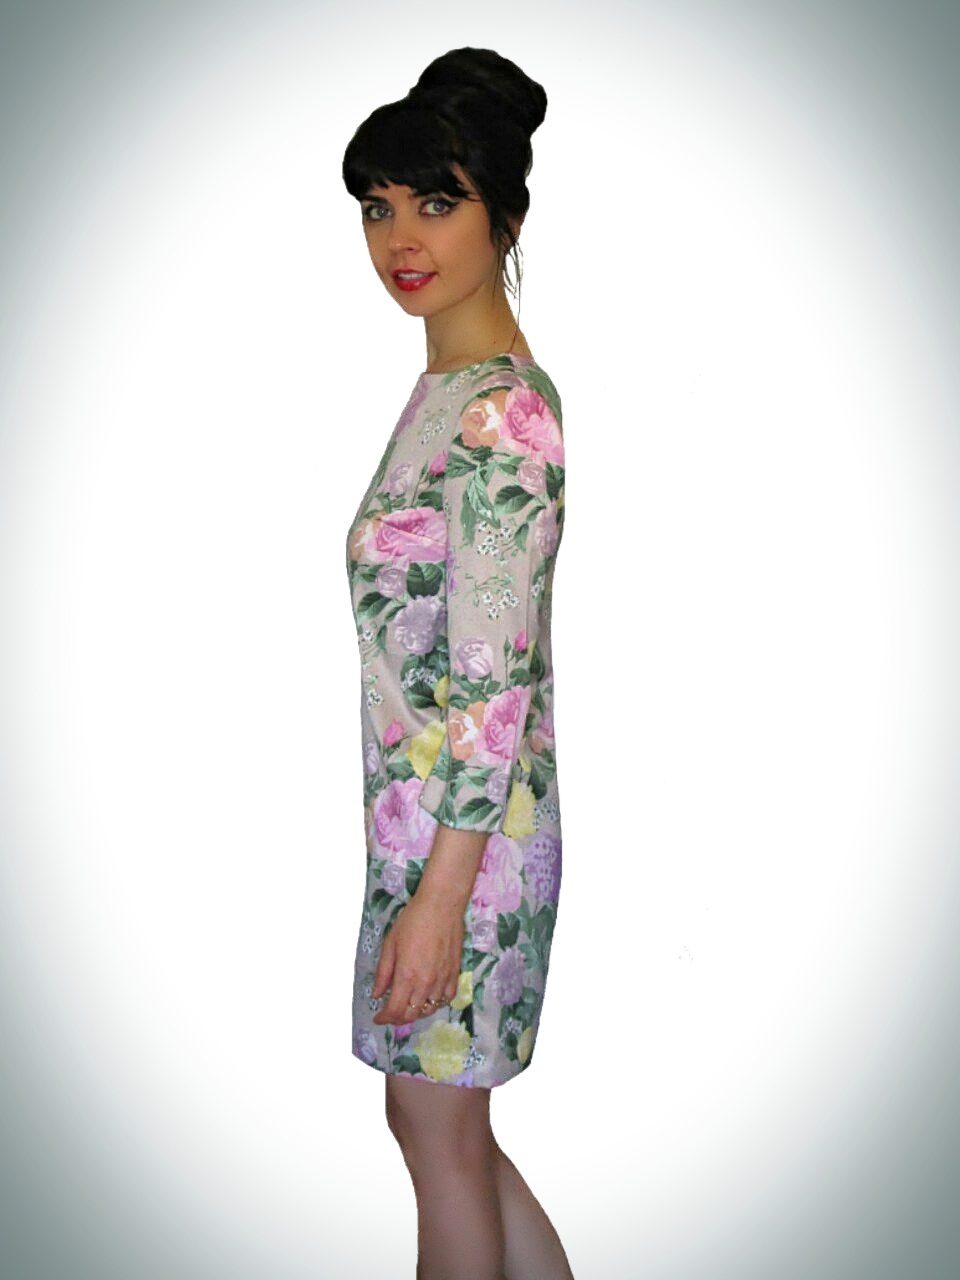 A Floral Print Mini Dress With 3/4 Sleeves